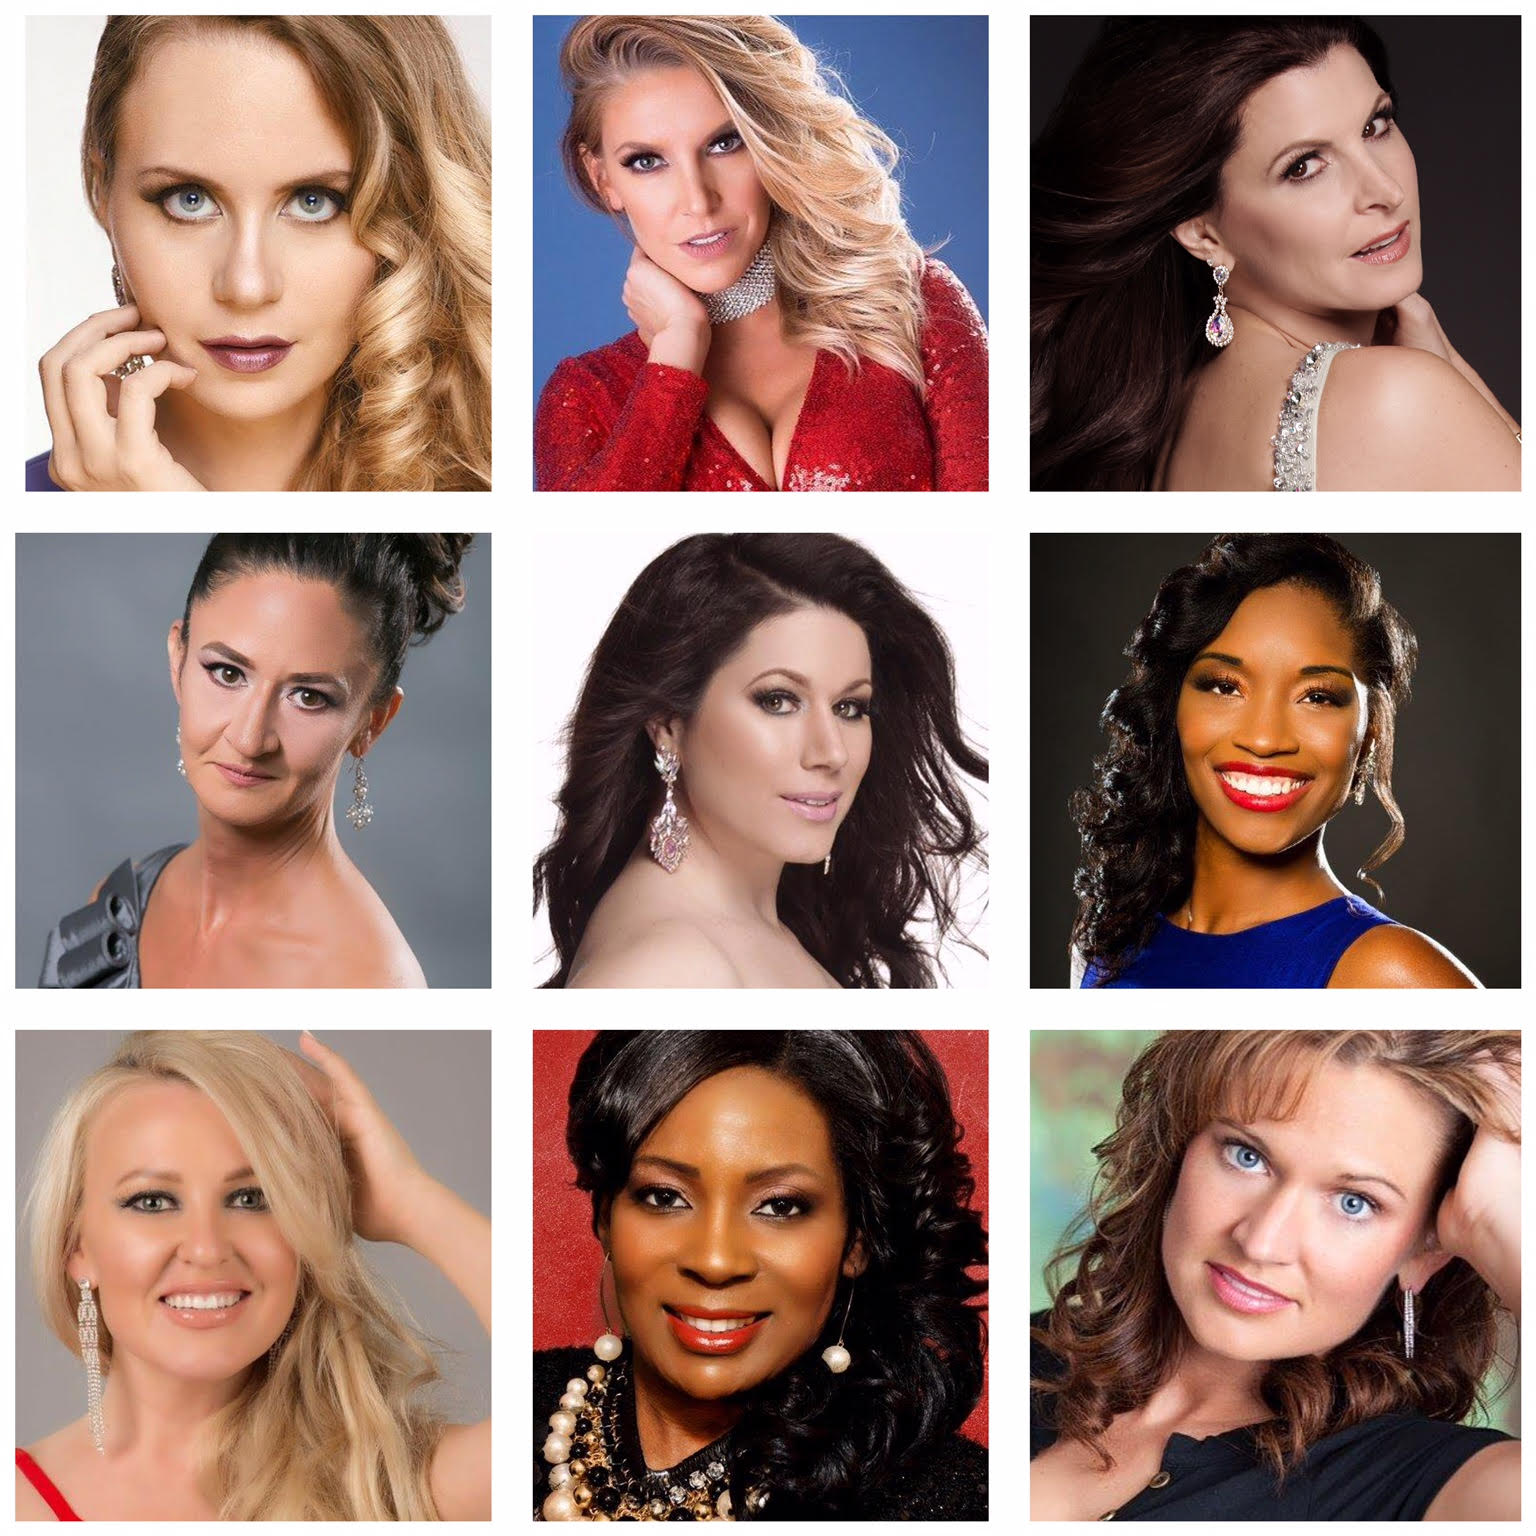 Mrs. Pennsylvania America 2017 Contestants